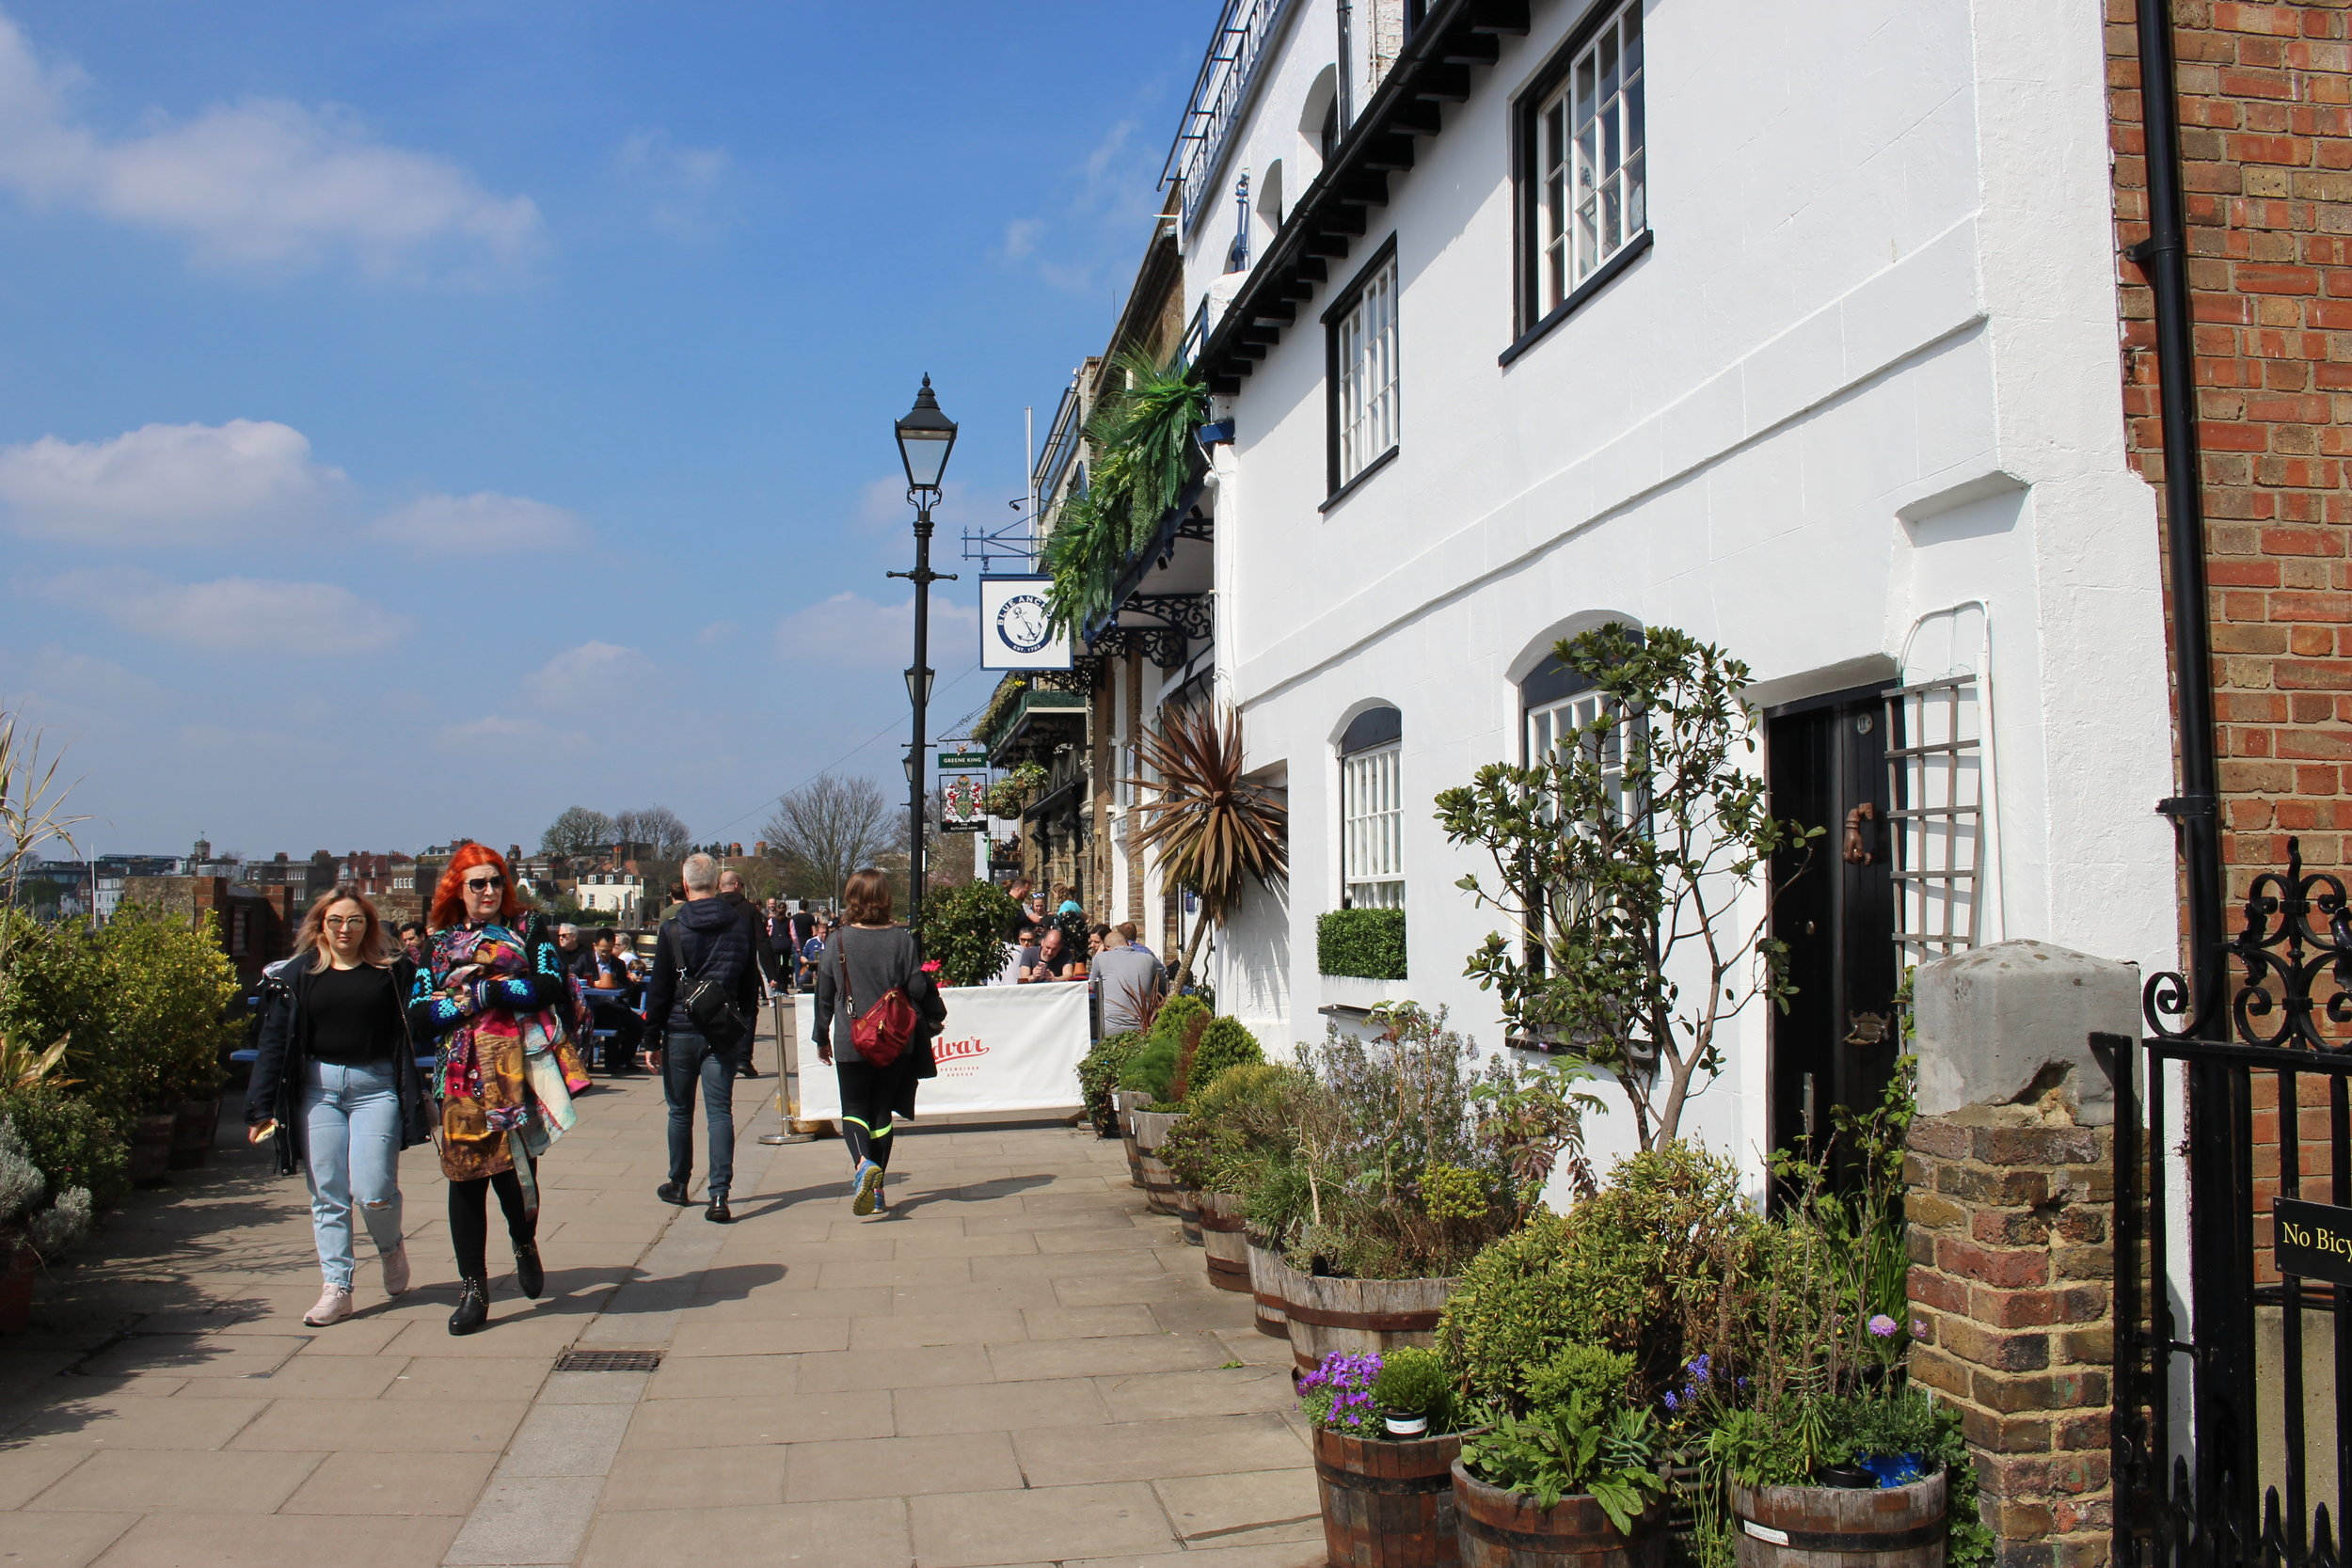 Things To Do In London: Thames Path Hammersmith